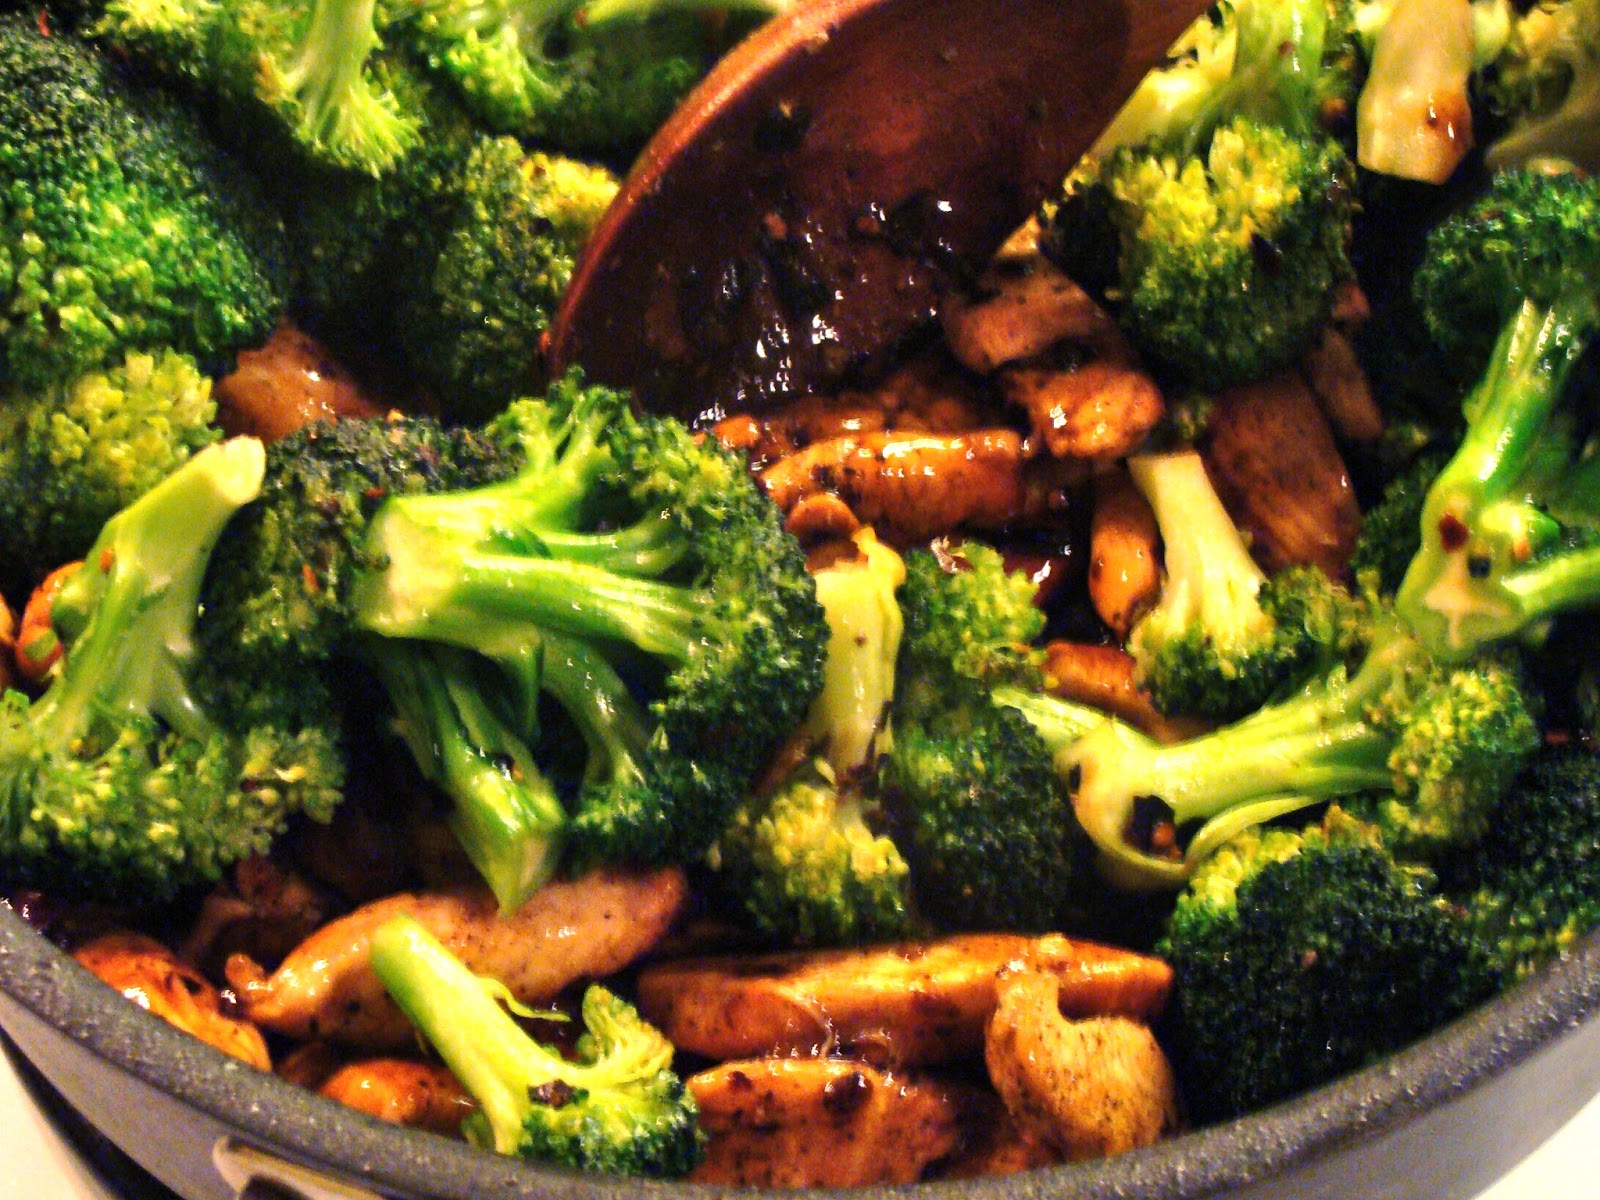 Low carb chinese food recipes food recipe low carb chinese en and broccoli the quest sugar free paleo peanut healthy chinese food recipe forumfinder